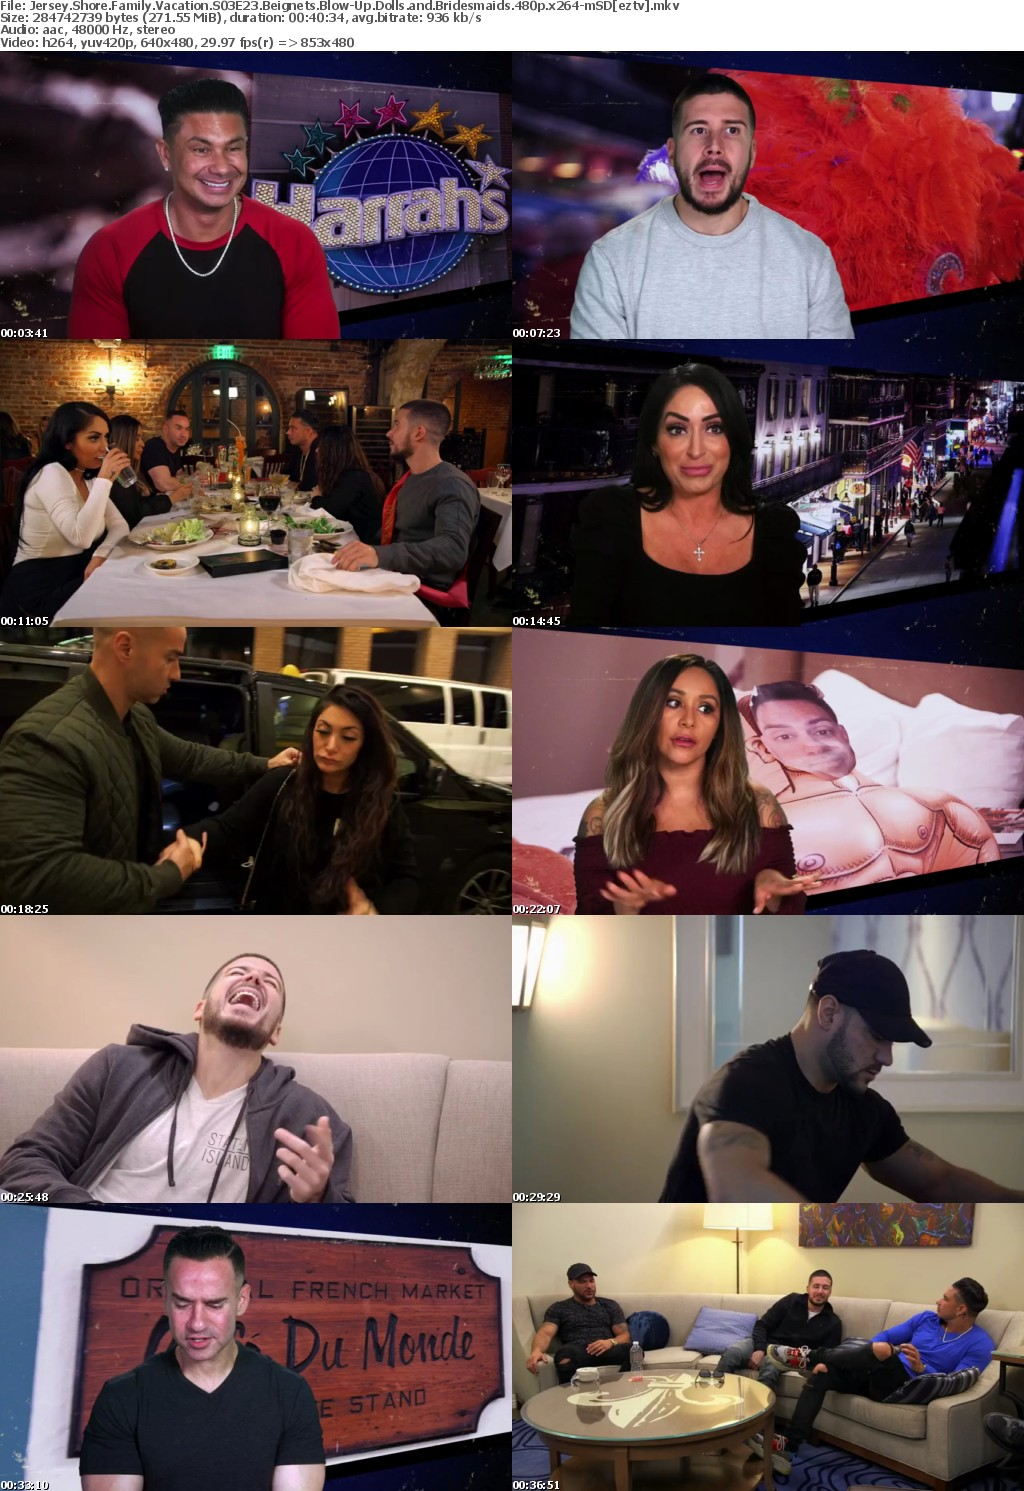 Jersey Shore Family Vacation S03E23 Beignets Blow-Up Dolls and Bridesmaids 480p x264-mSD